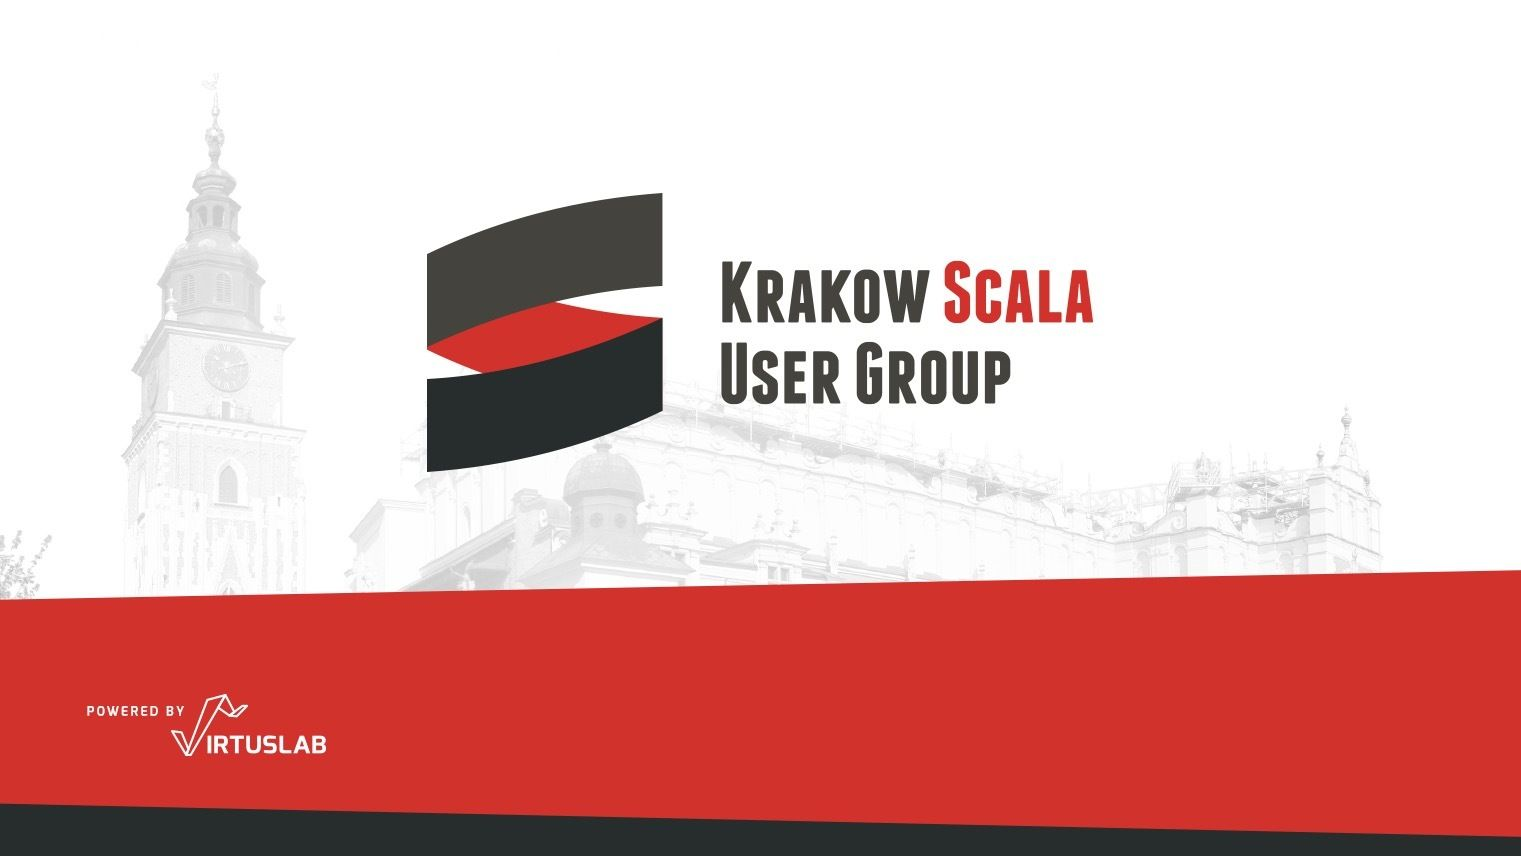 Krakow Scala User Group